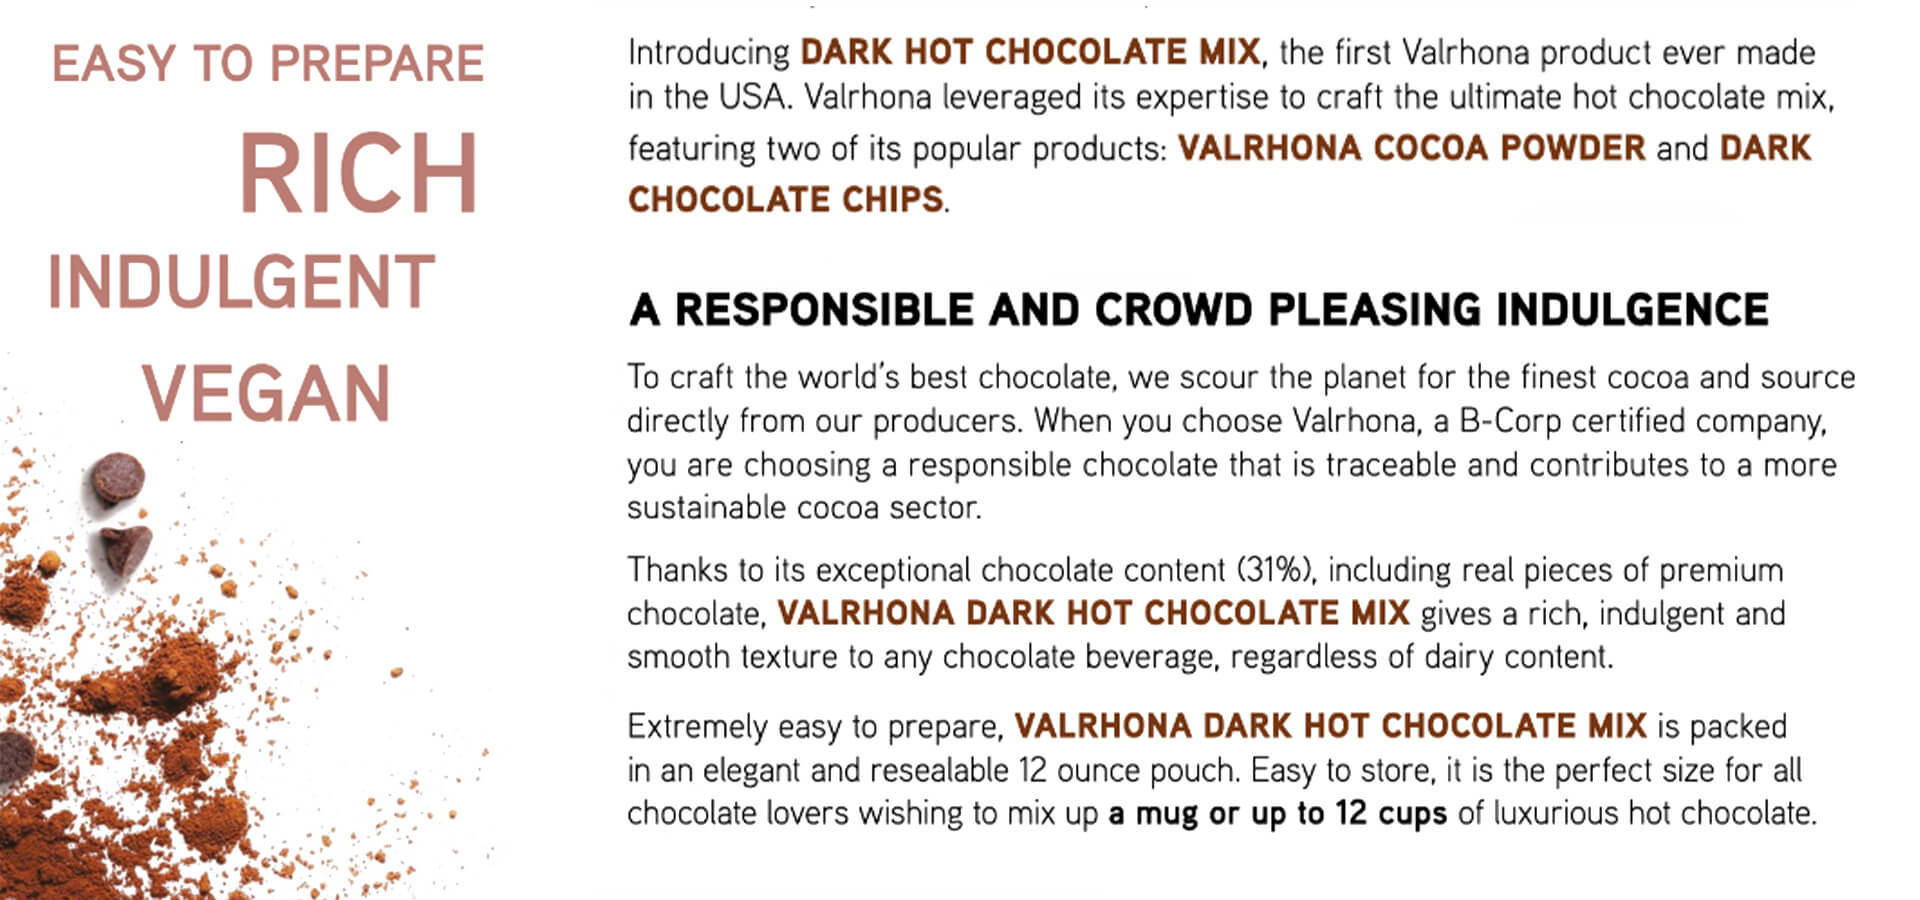 VALRHONA DARK HOT CHOCOLATE MIX, the first Valrhona product ever made in the USA. Valrhona leveraged its expertise to craft the ultimate Vegan hot chocolate mix, featuring two of its popular products: VALRHONA COCOA POWDER and DARK CHOCOLATE CHIPS. Thanks to its exceptional chocolate content (31%), including real pieces of premium chocolate, VALRHONA DARK HOT CHOCOLATE MIX gives a rich, indulgent and smooth texture to any chocolate beverage, regardless of dairy content.